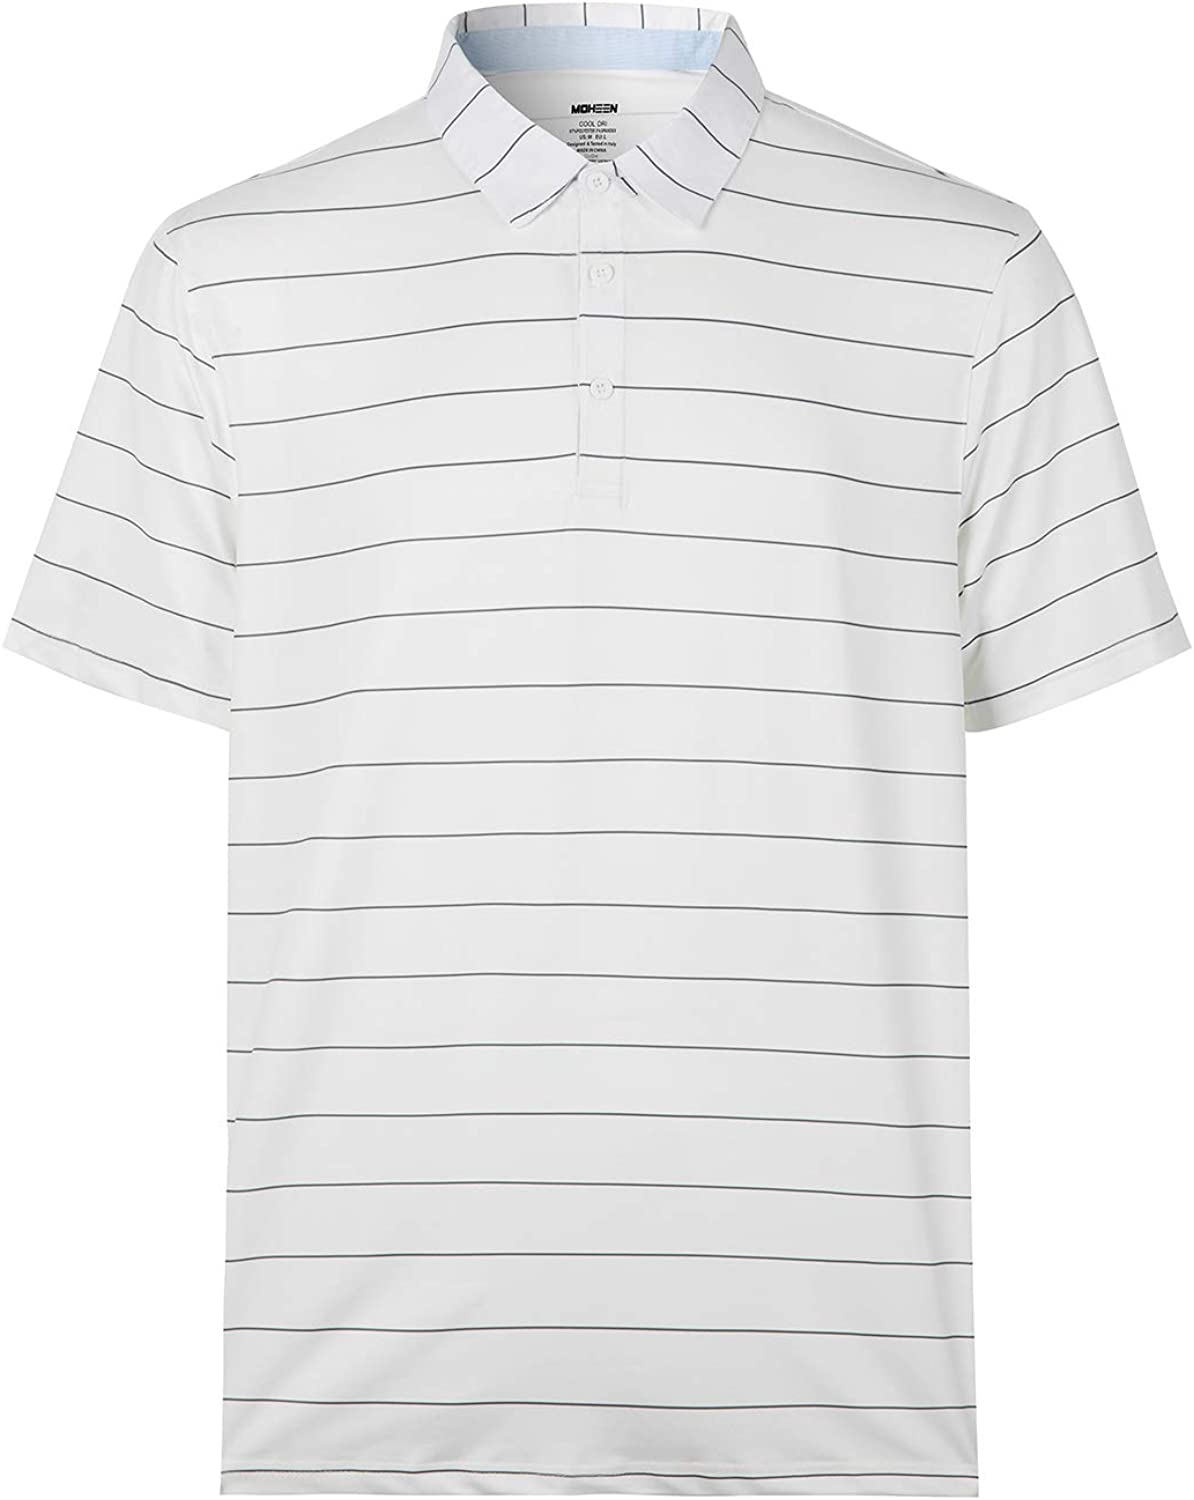 Men's Big and Tall Polo Dallas Mall Super-cheap Shirt Dry Tech Mositure Wicking Shor Fit